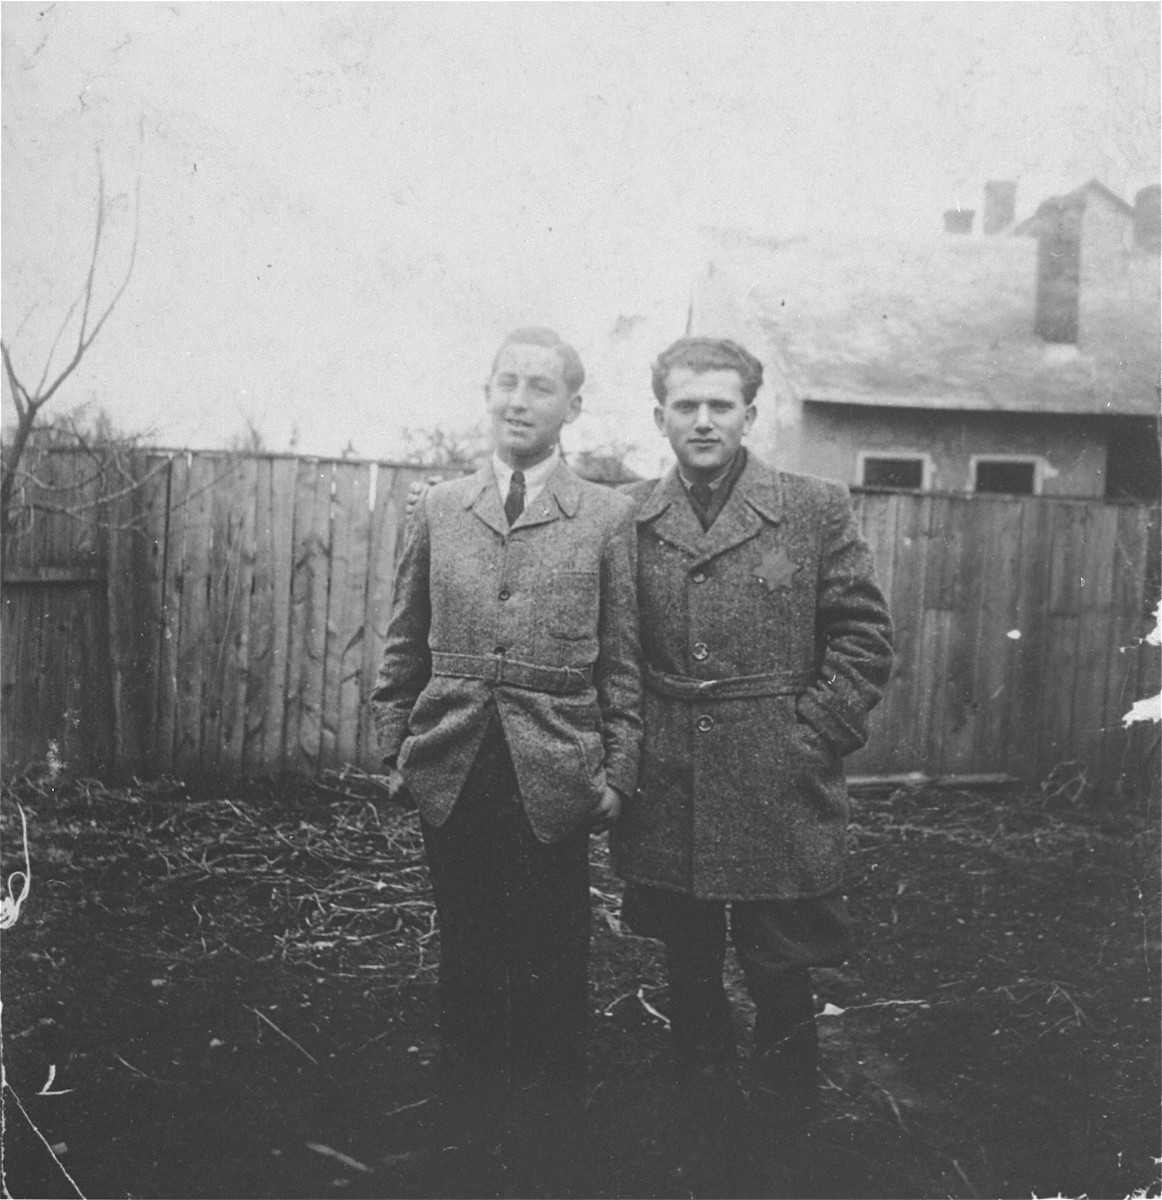 Ludvic Ickovic (right) poses with his friend Harry Rot, in the yard of the Ickovic home in Tacovo.  Soon after Harry Rot was deported to his death in Auschwitz.